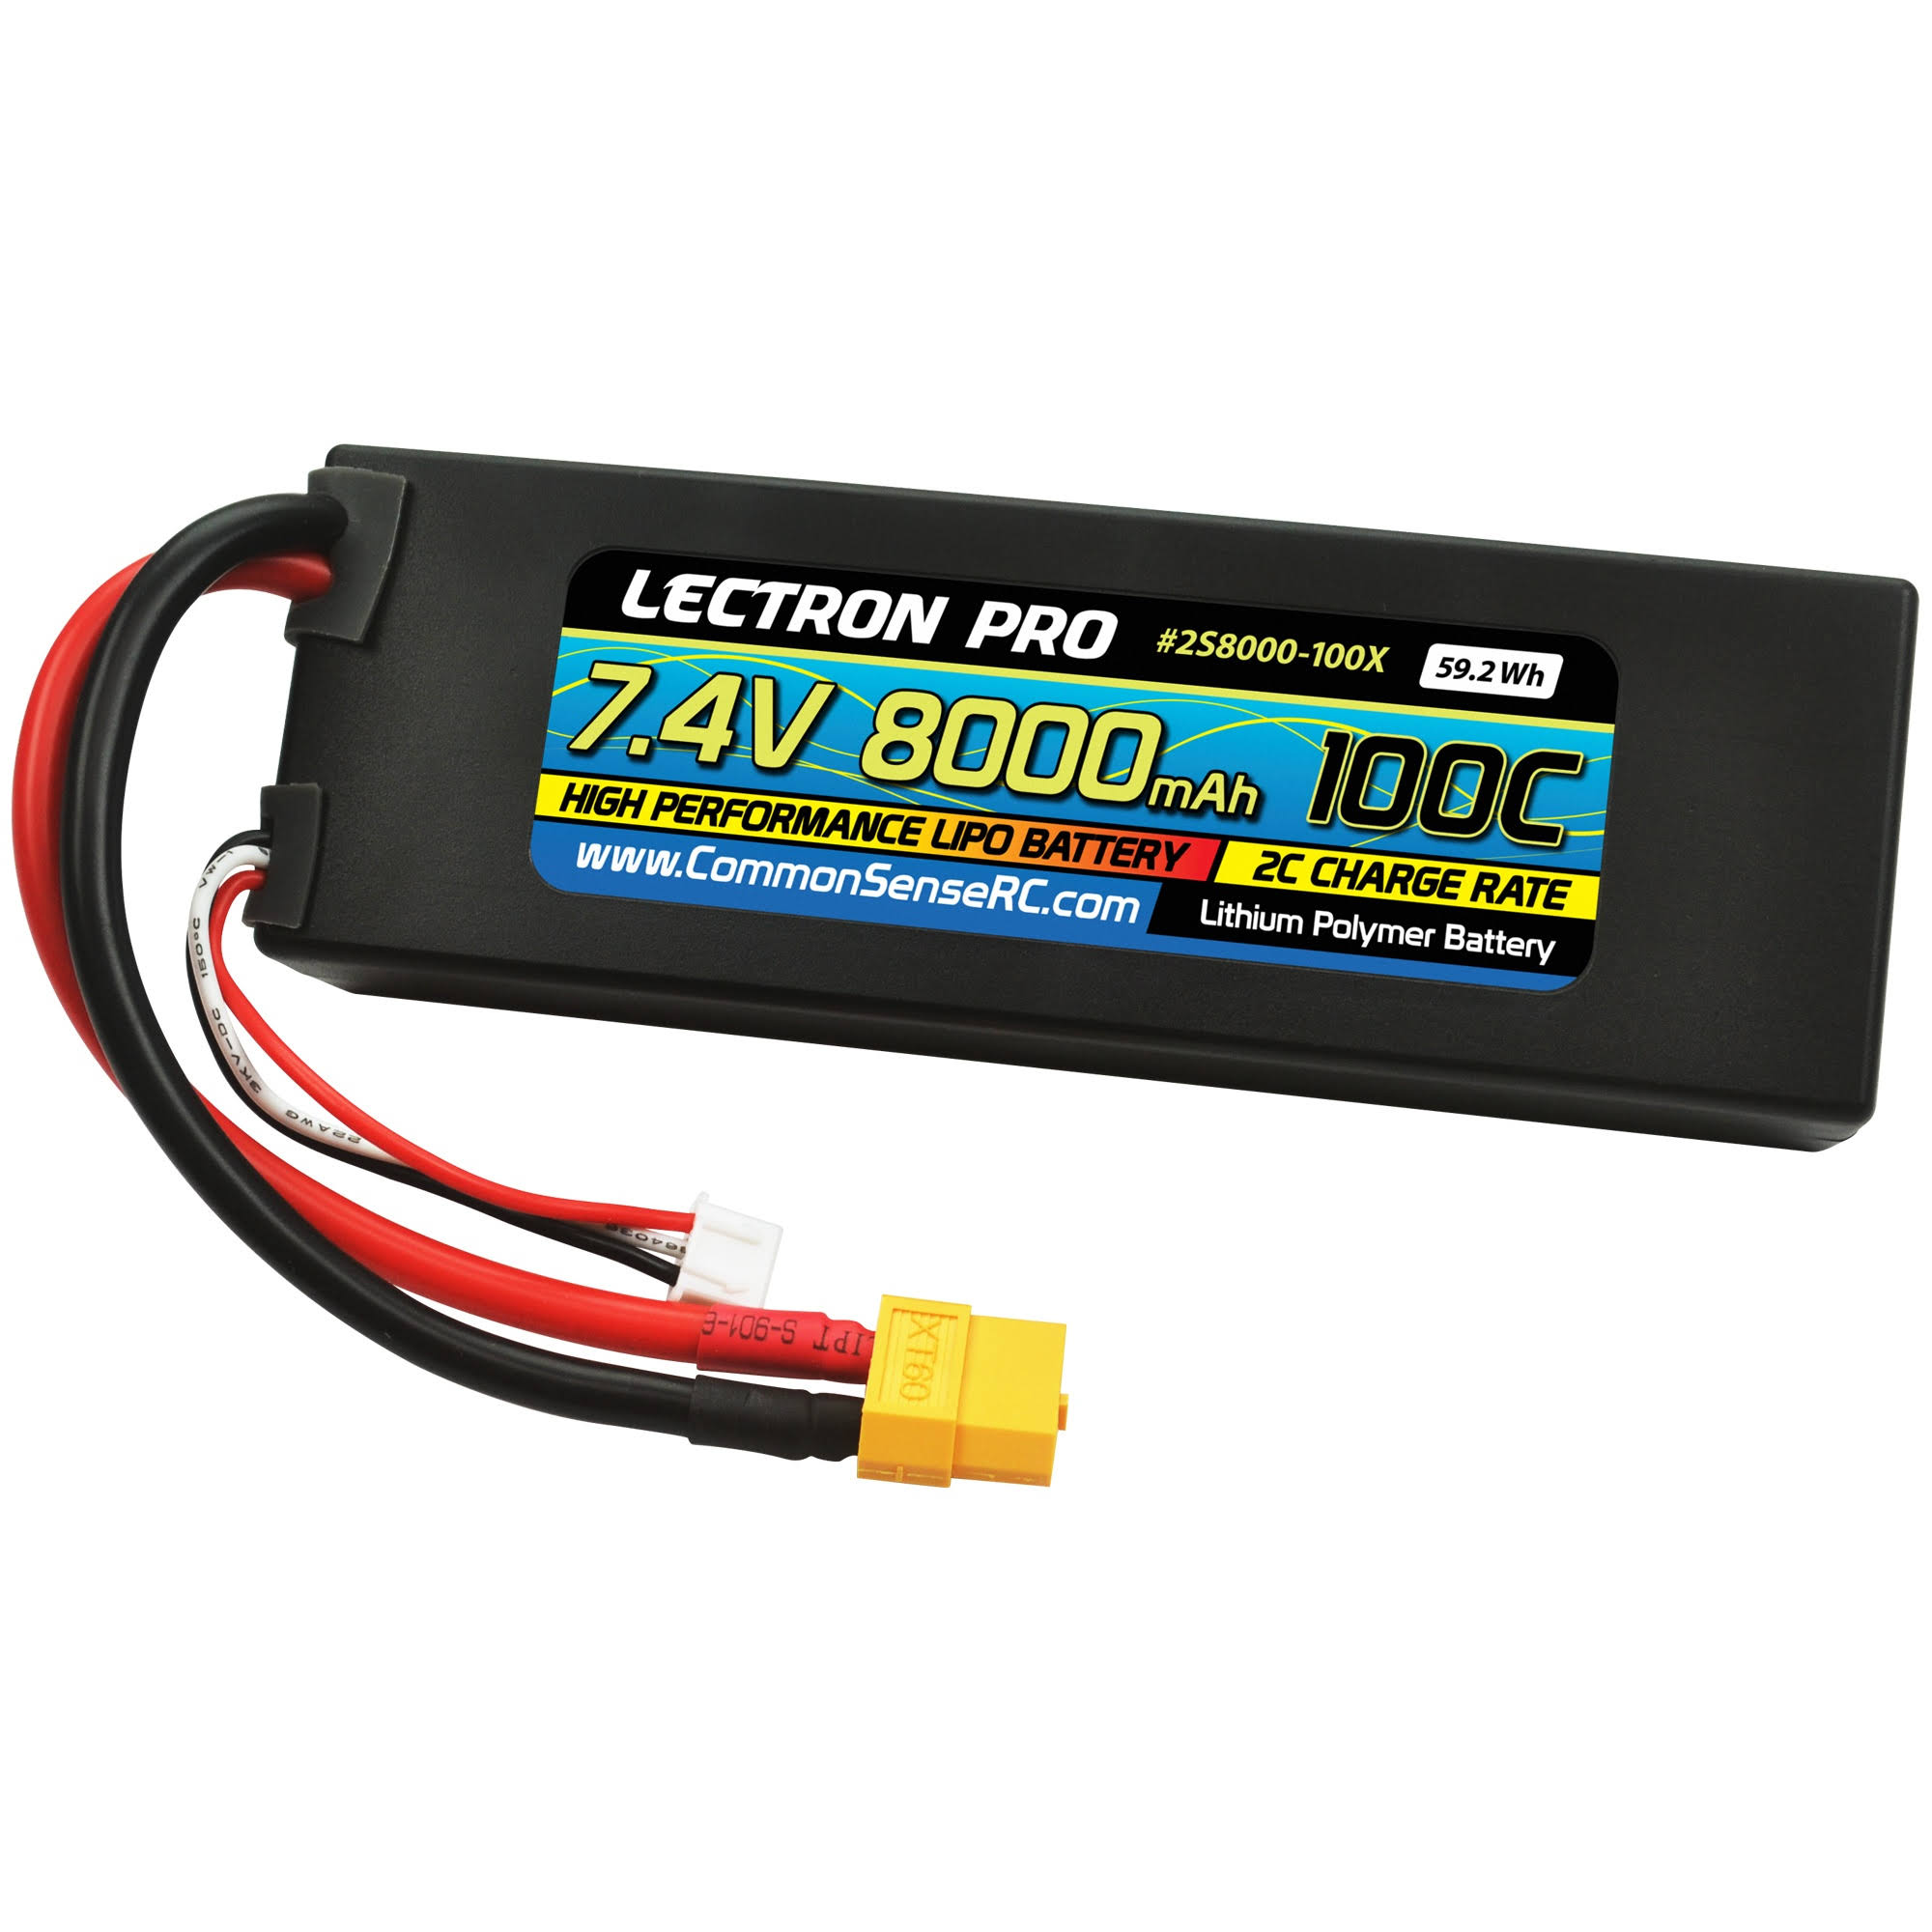 Lectron Pro Lipo Battery - 7.4v, 8000mah, 100C, With XT60 Connector